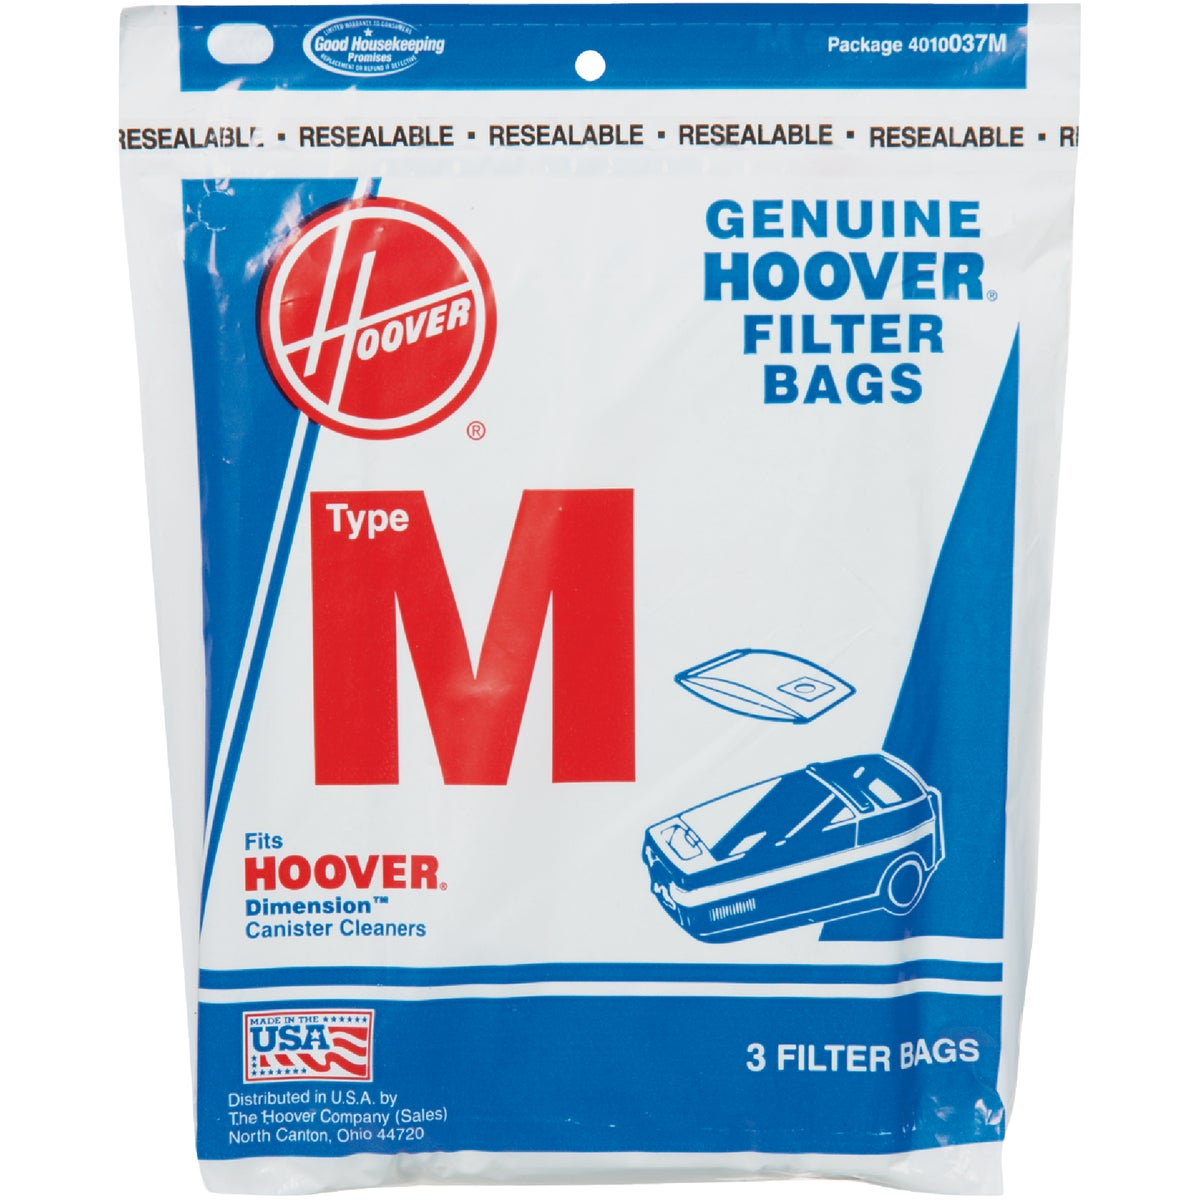 TYPE M VAC CLEANER BAG - 4010037M by Hoover Co